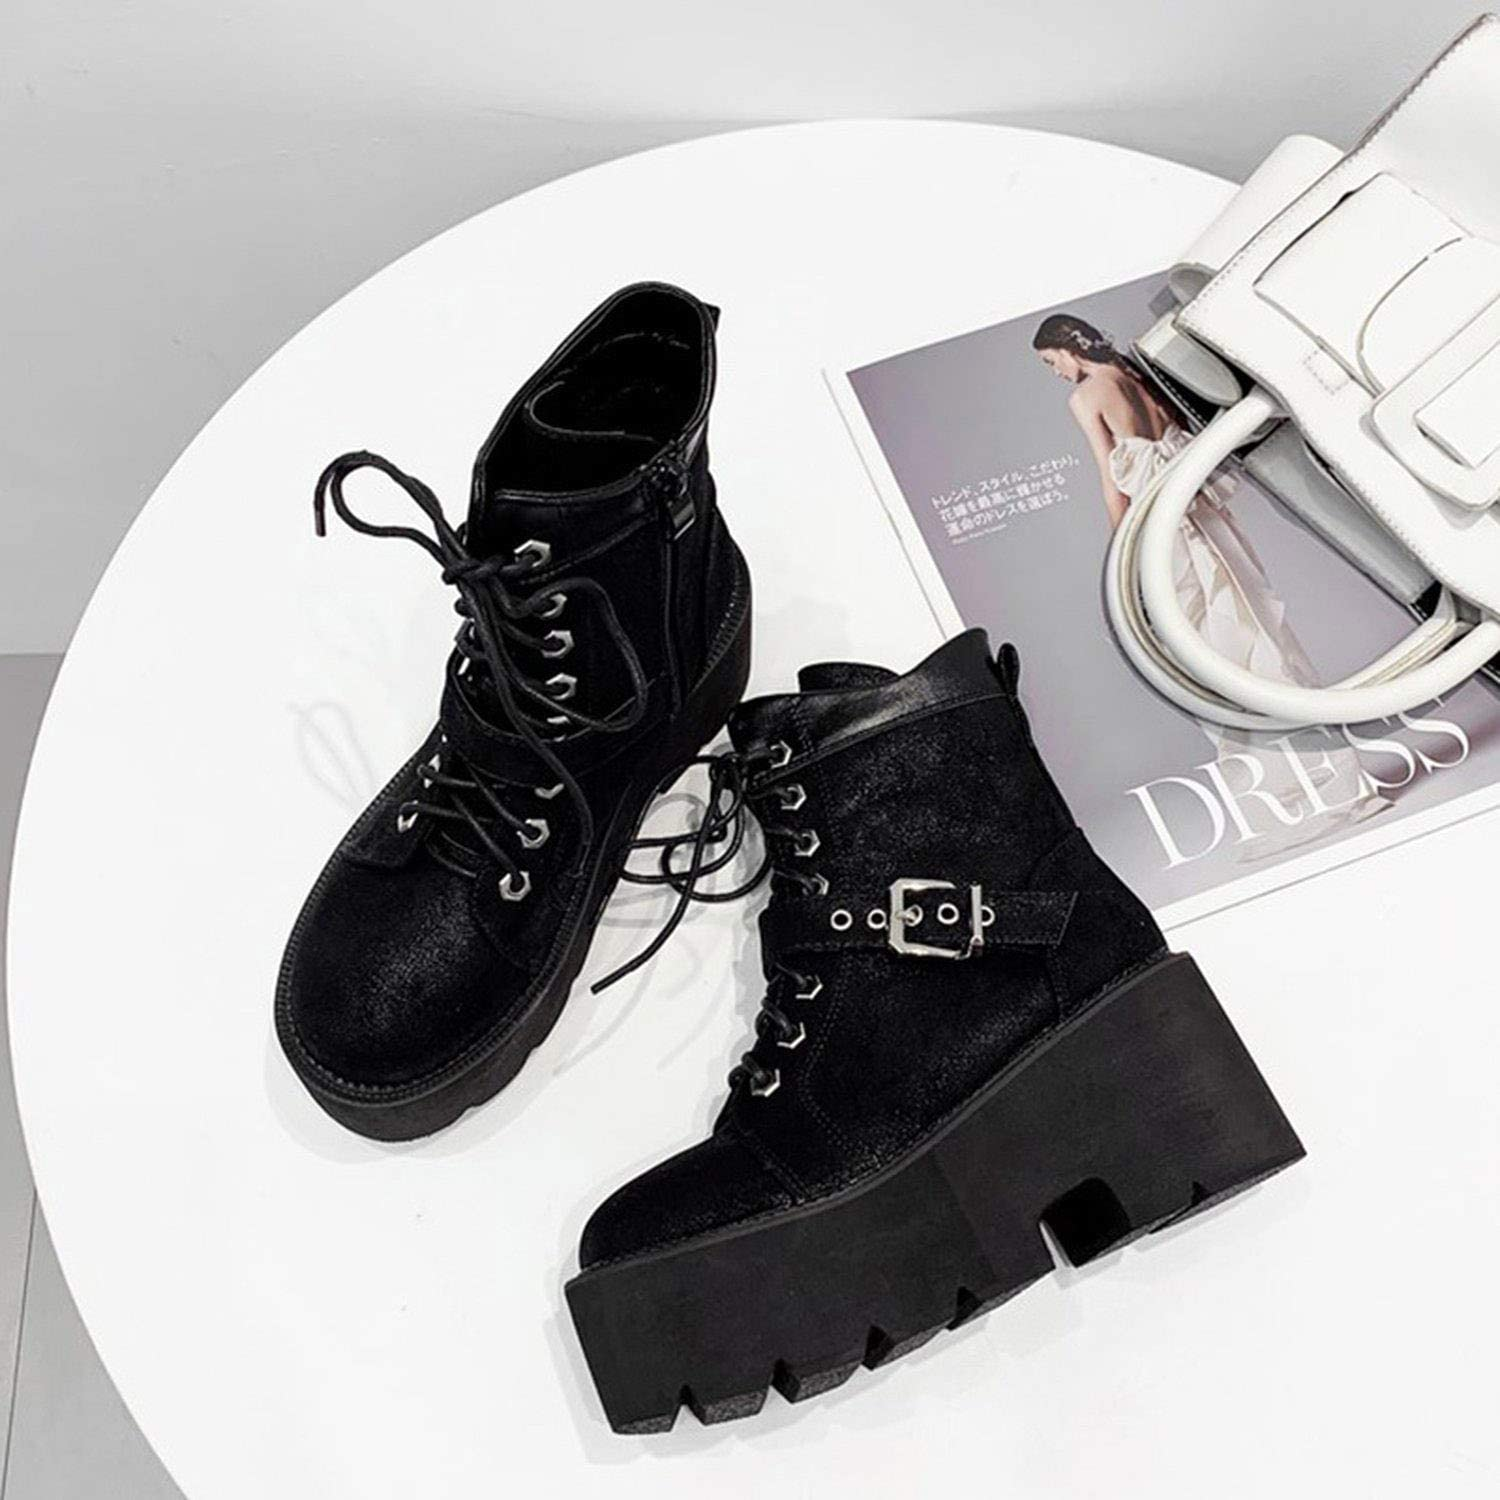 Buckle Strap Chunky Platform Womens Boots Lace up Martin Boots Round Toe Ankle Boots